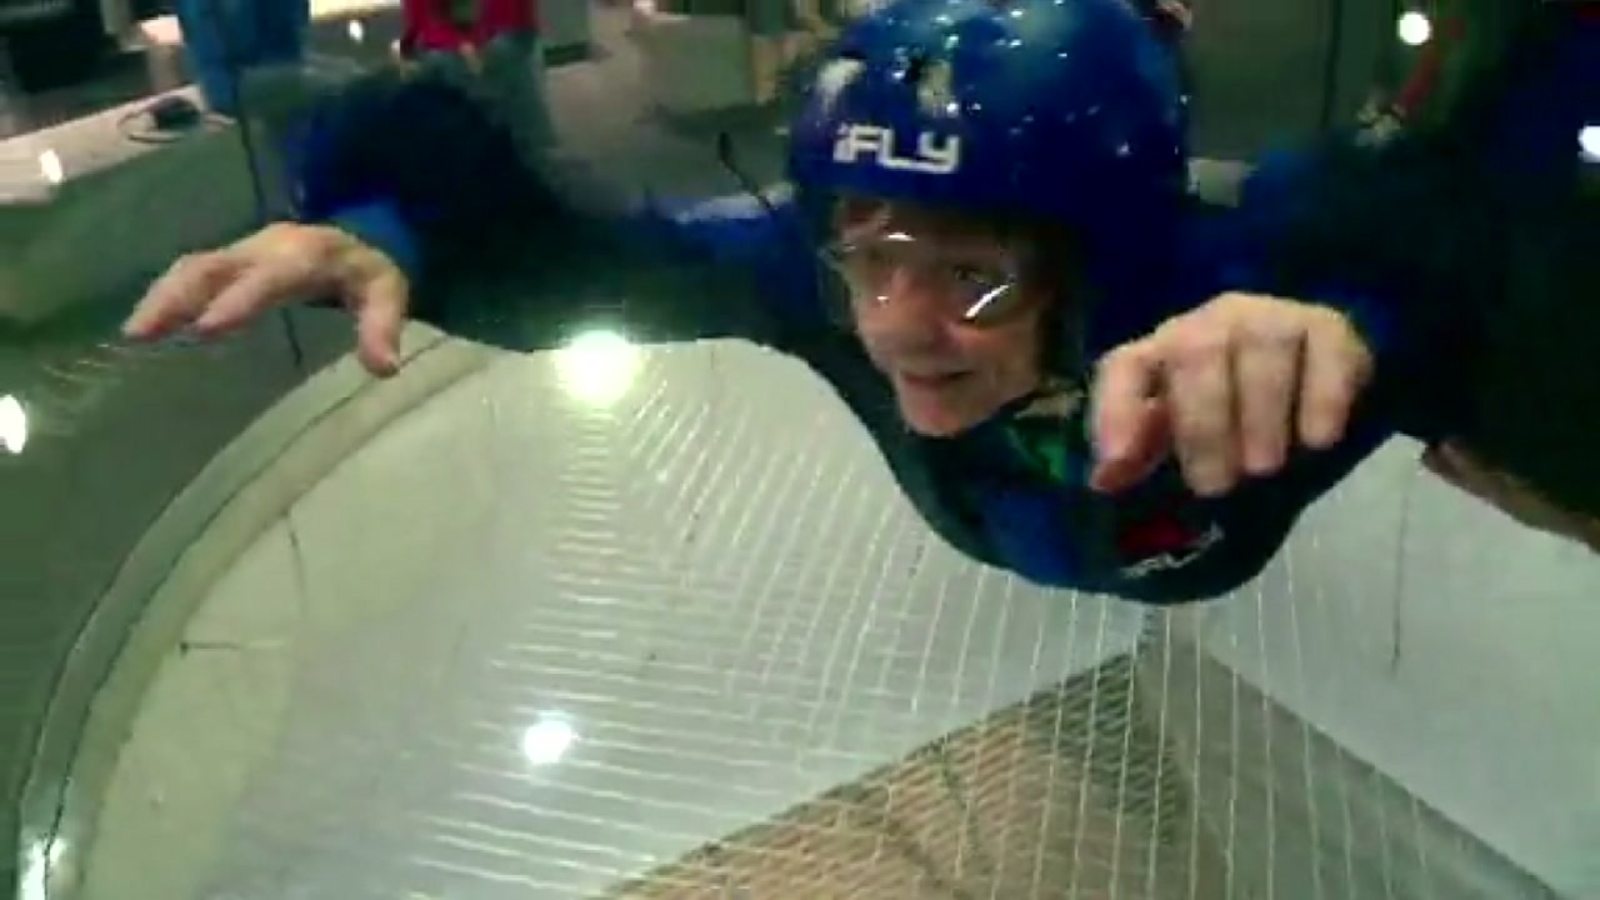 92 Year Old Celebrates Birthday With Indoor Skydive